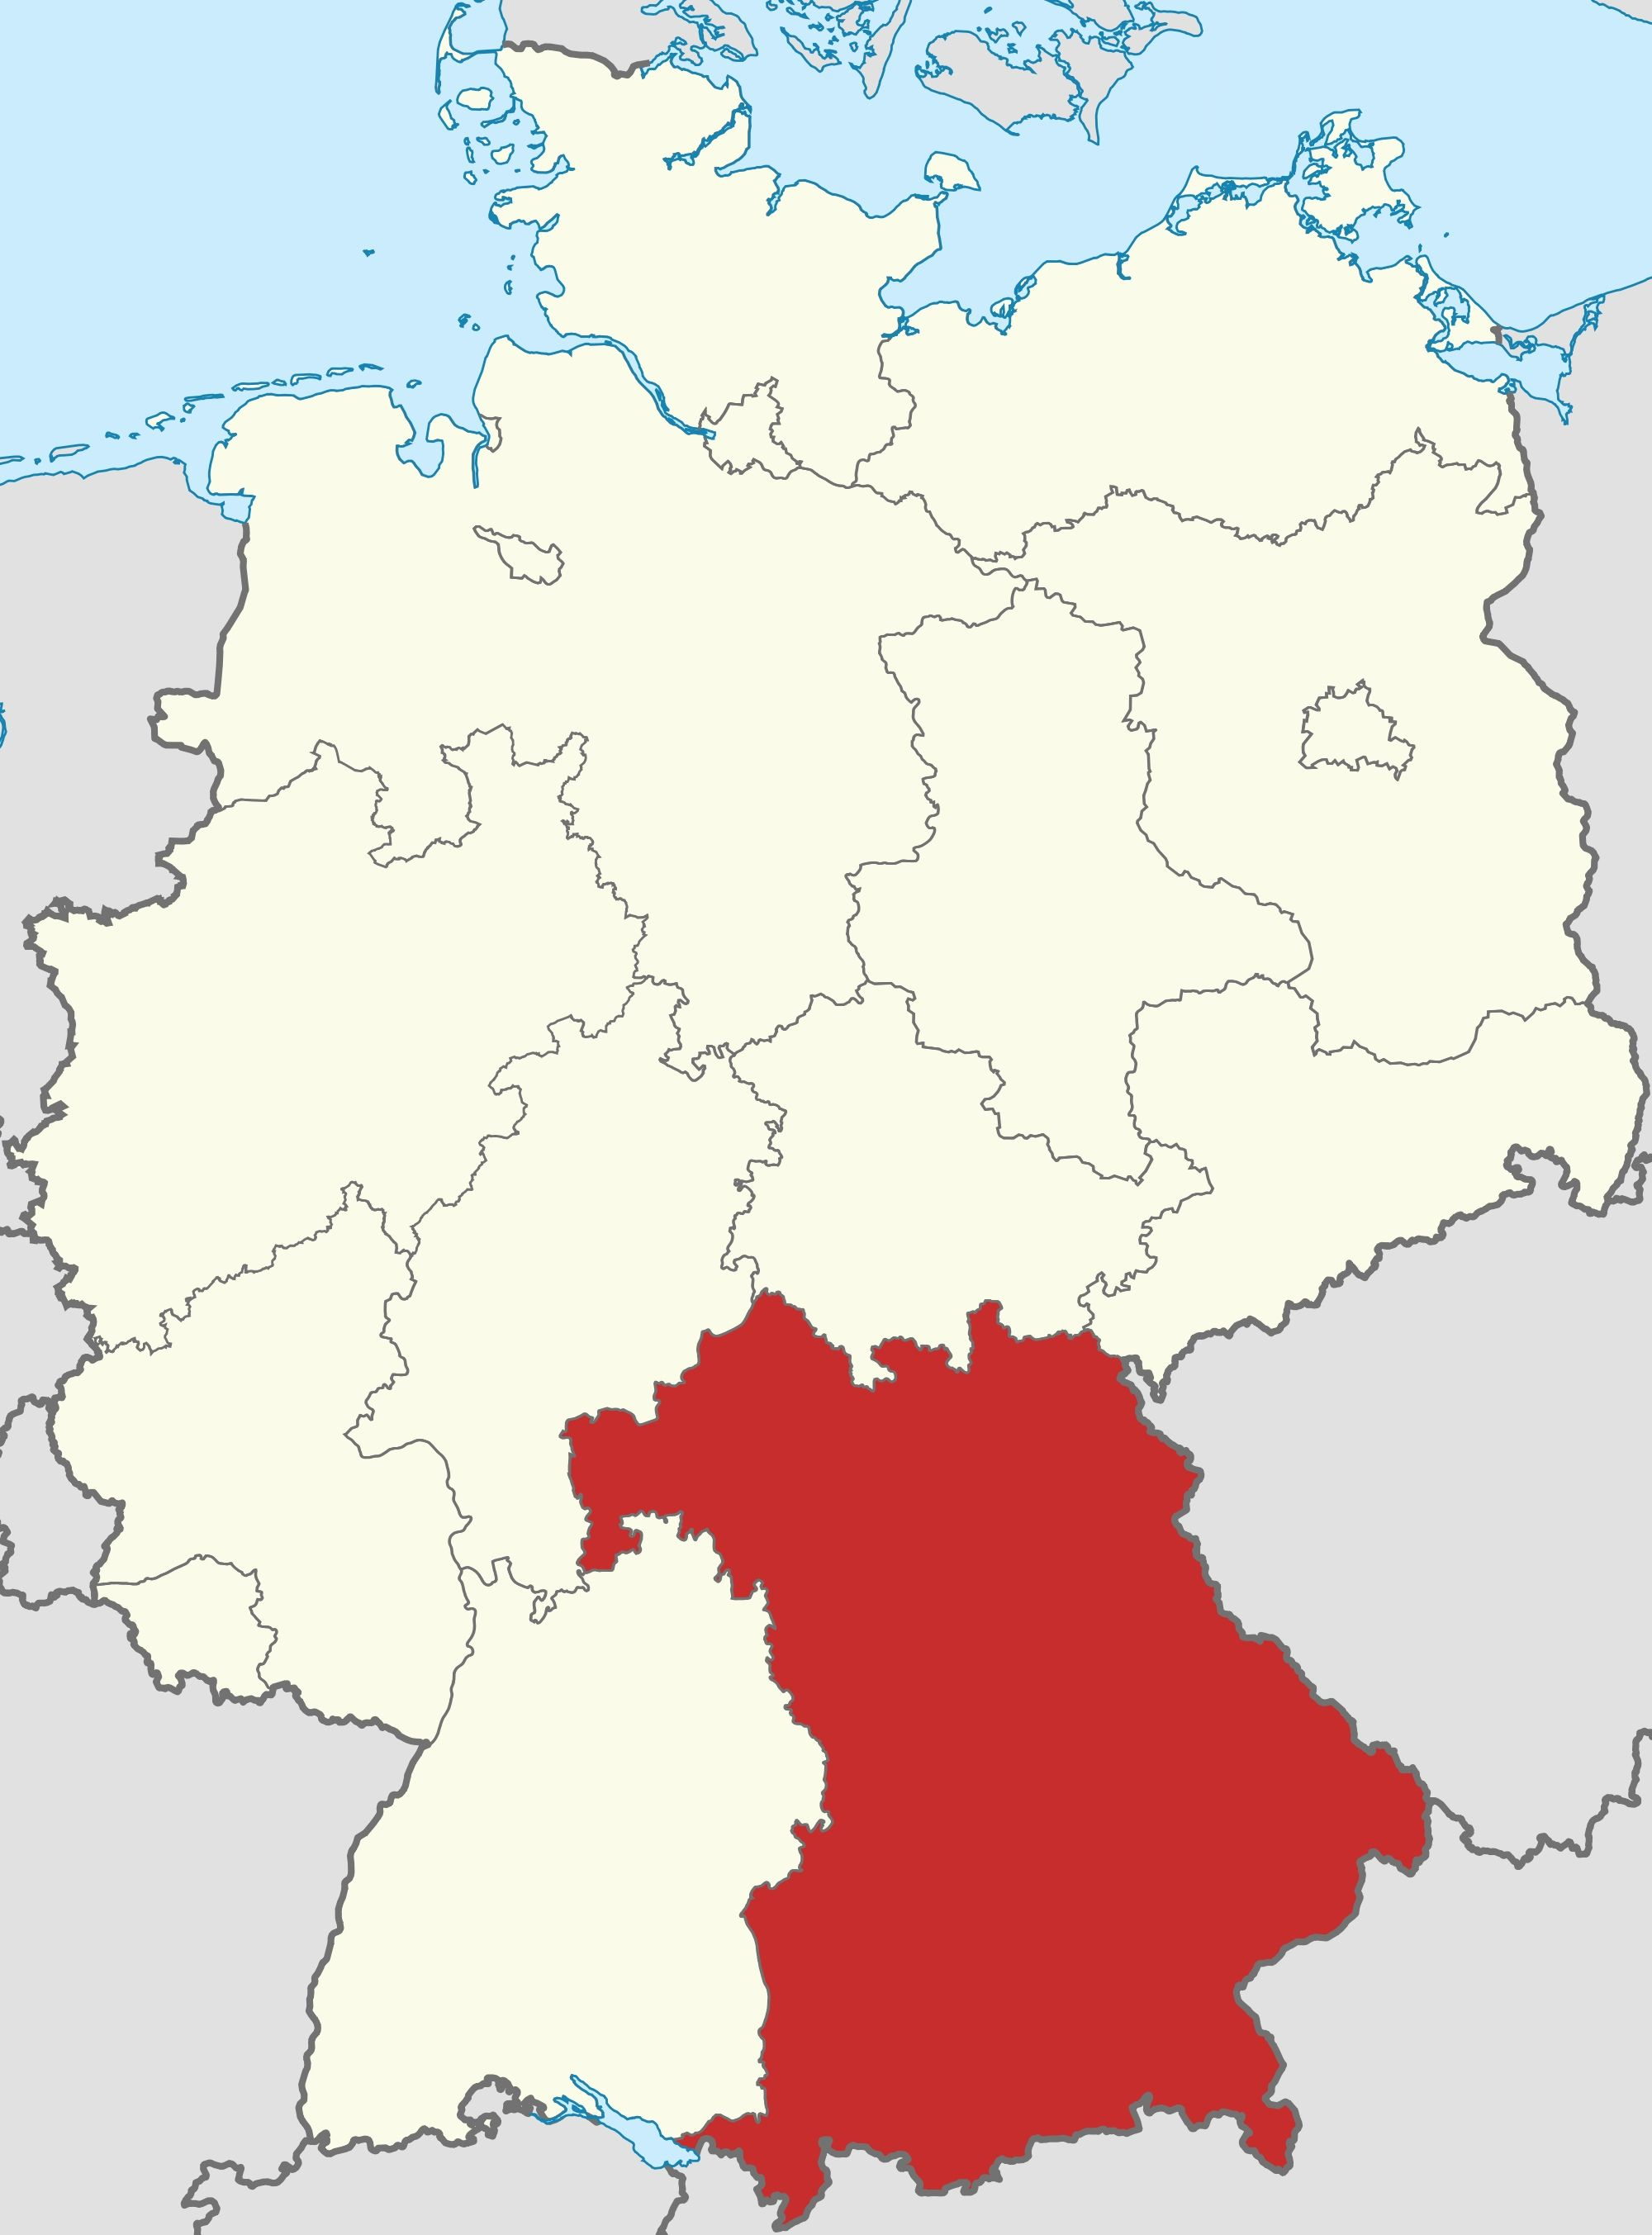 Pin by Saudi Arabia on Saudi Arabia Travell   Germany ... Saudi State Travel Map on state vote map, state debt map, state route map, state high points map, state migration map, state marketplace map, state plane map, state climate map, state name map, state gas prices map, state reference map,